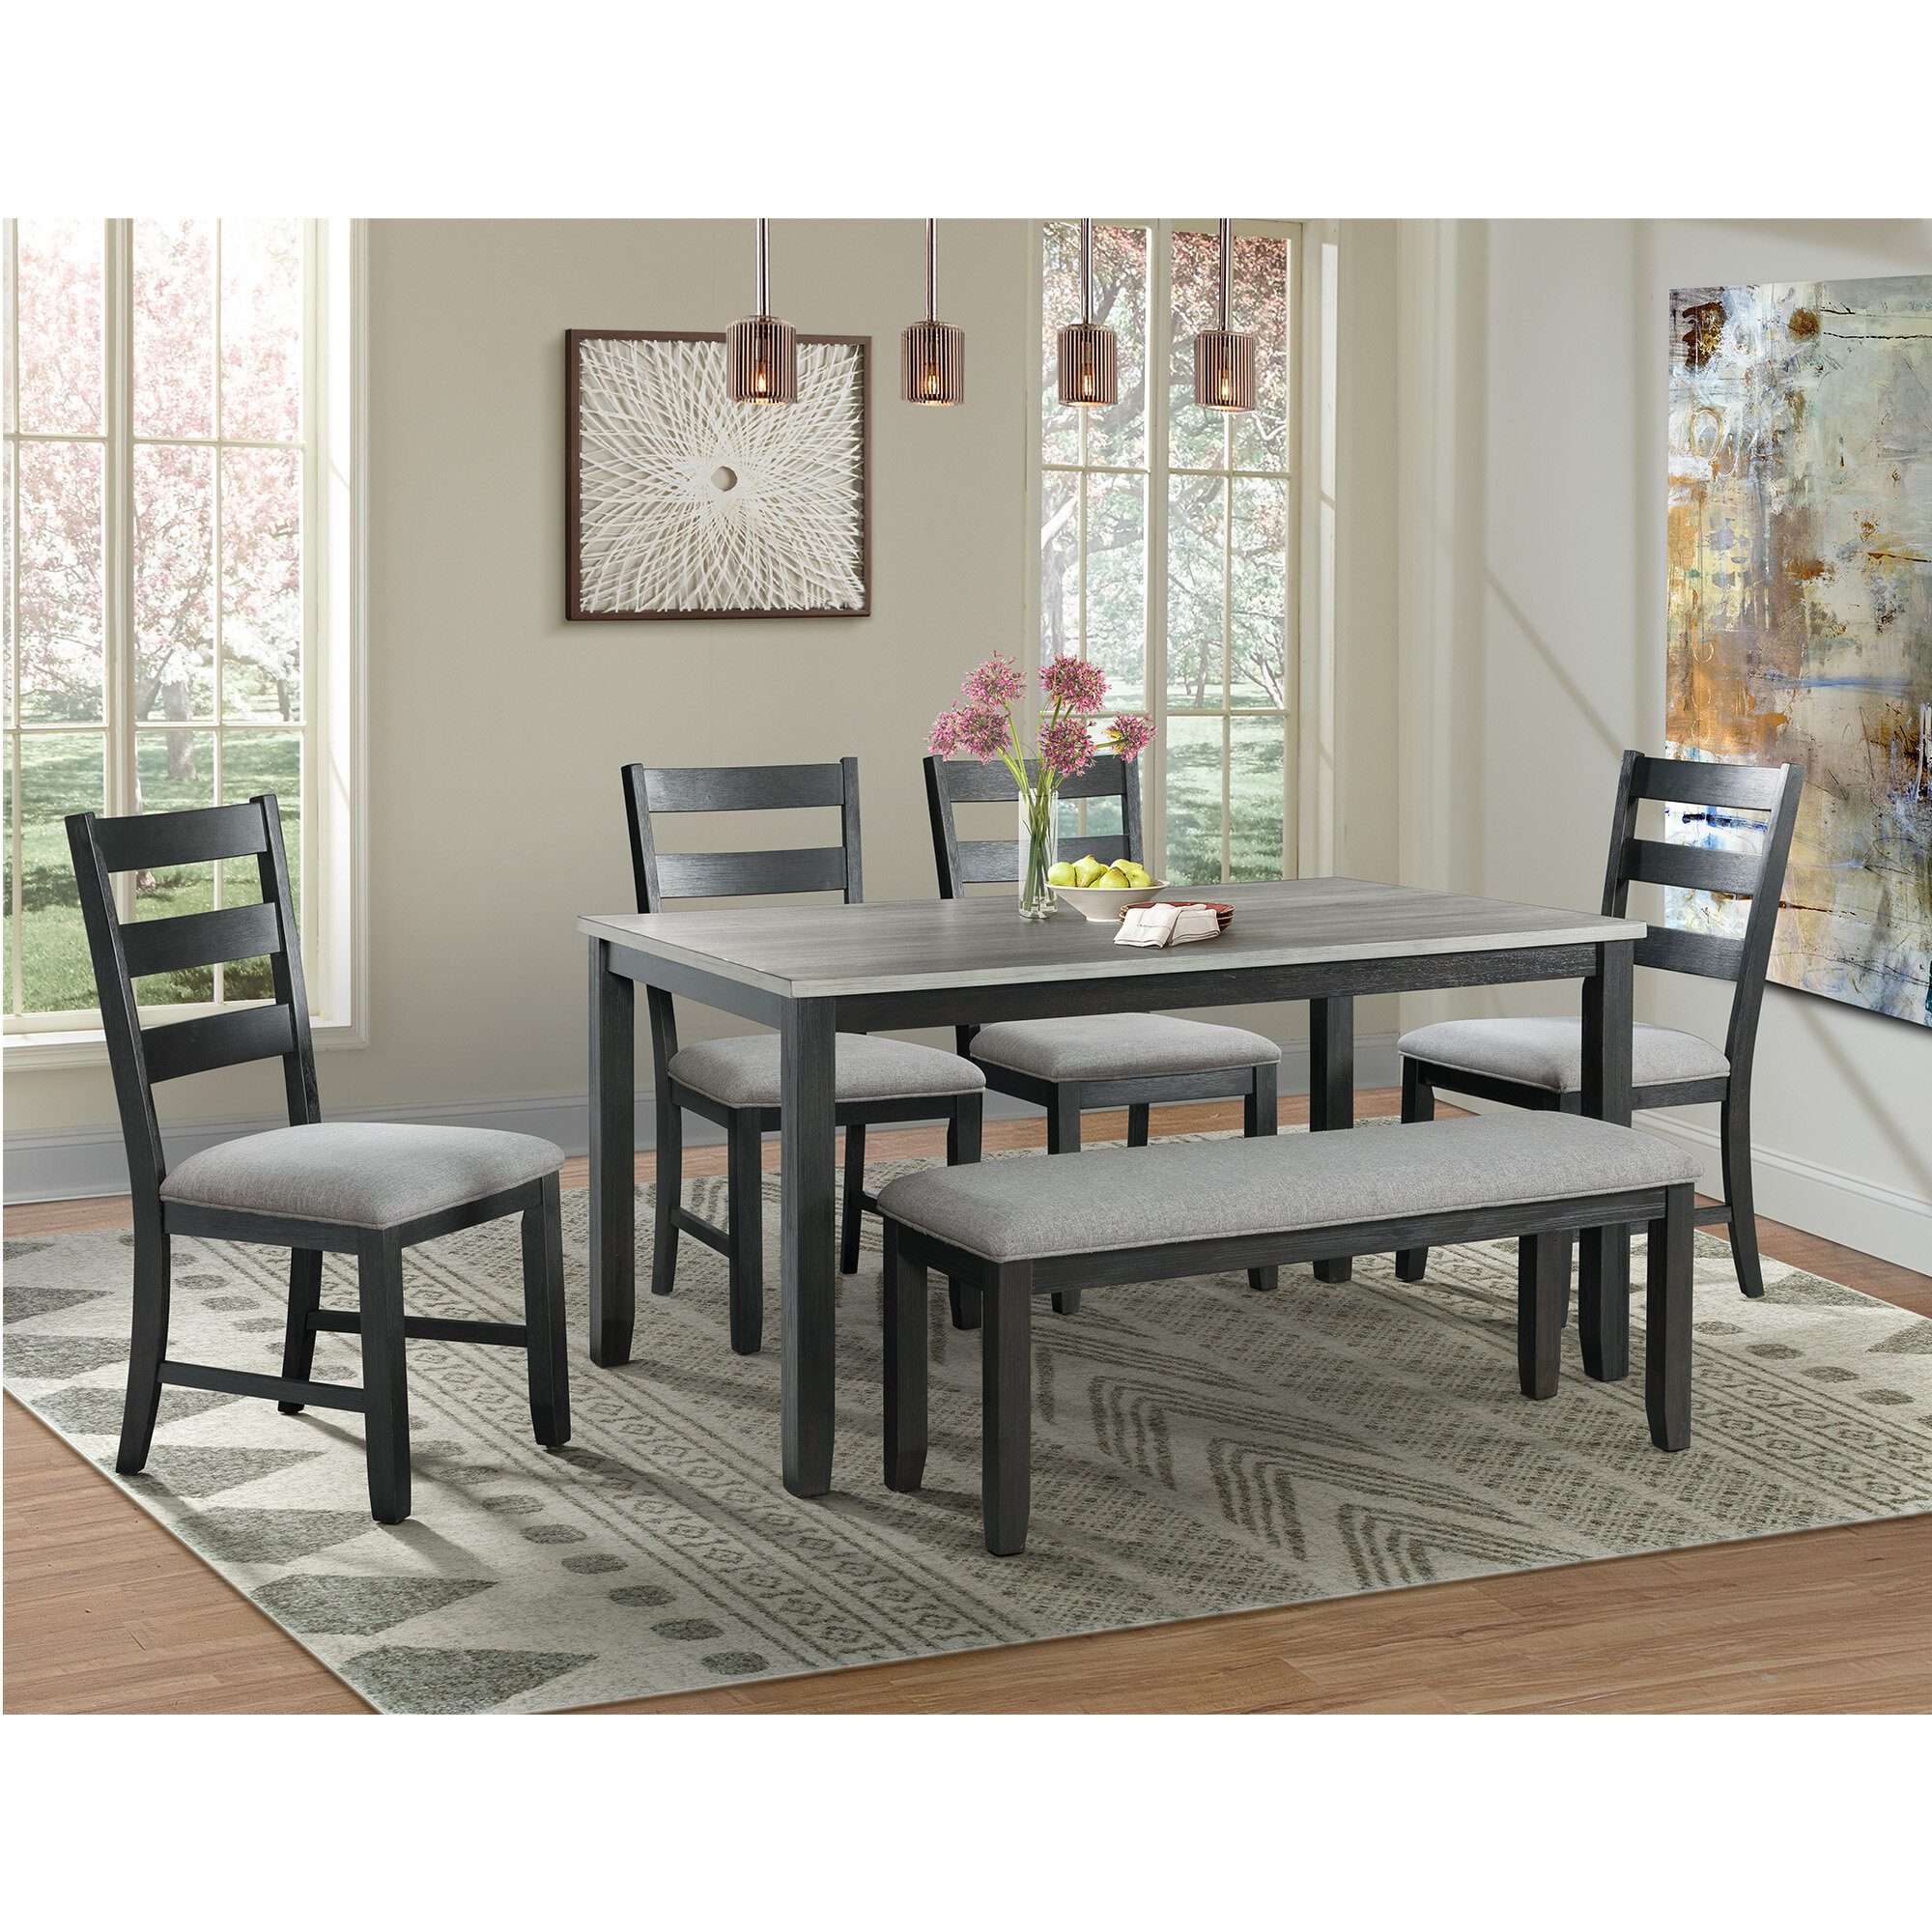 Wood Kitchen Dining Room Sets You Ll Love In 2021 Wayfair